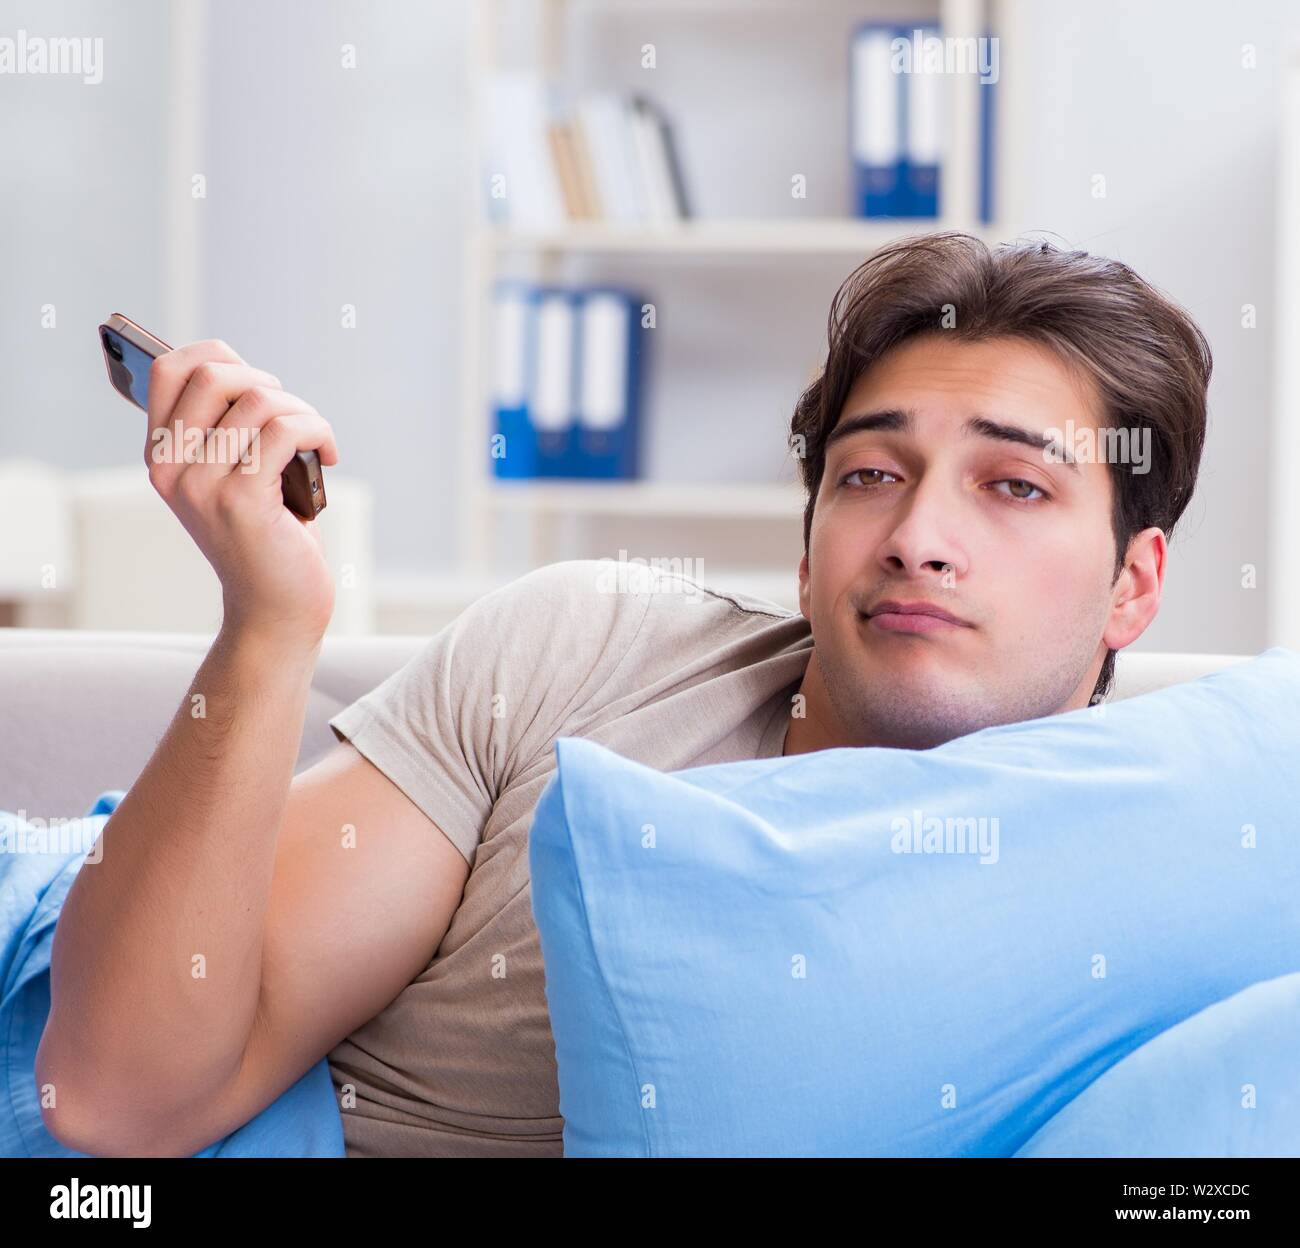 The man addicted to his mobile phone in bed - Stock Image